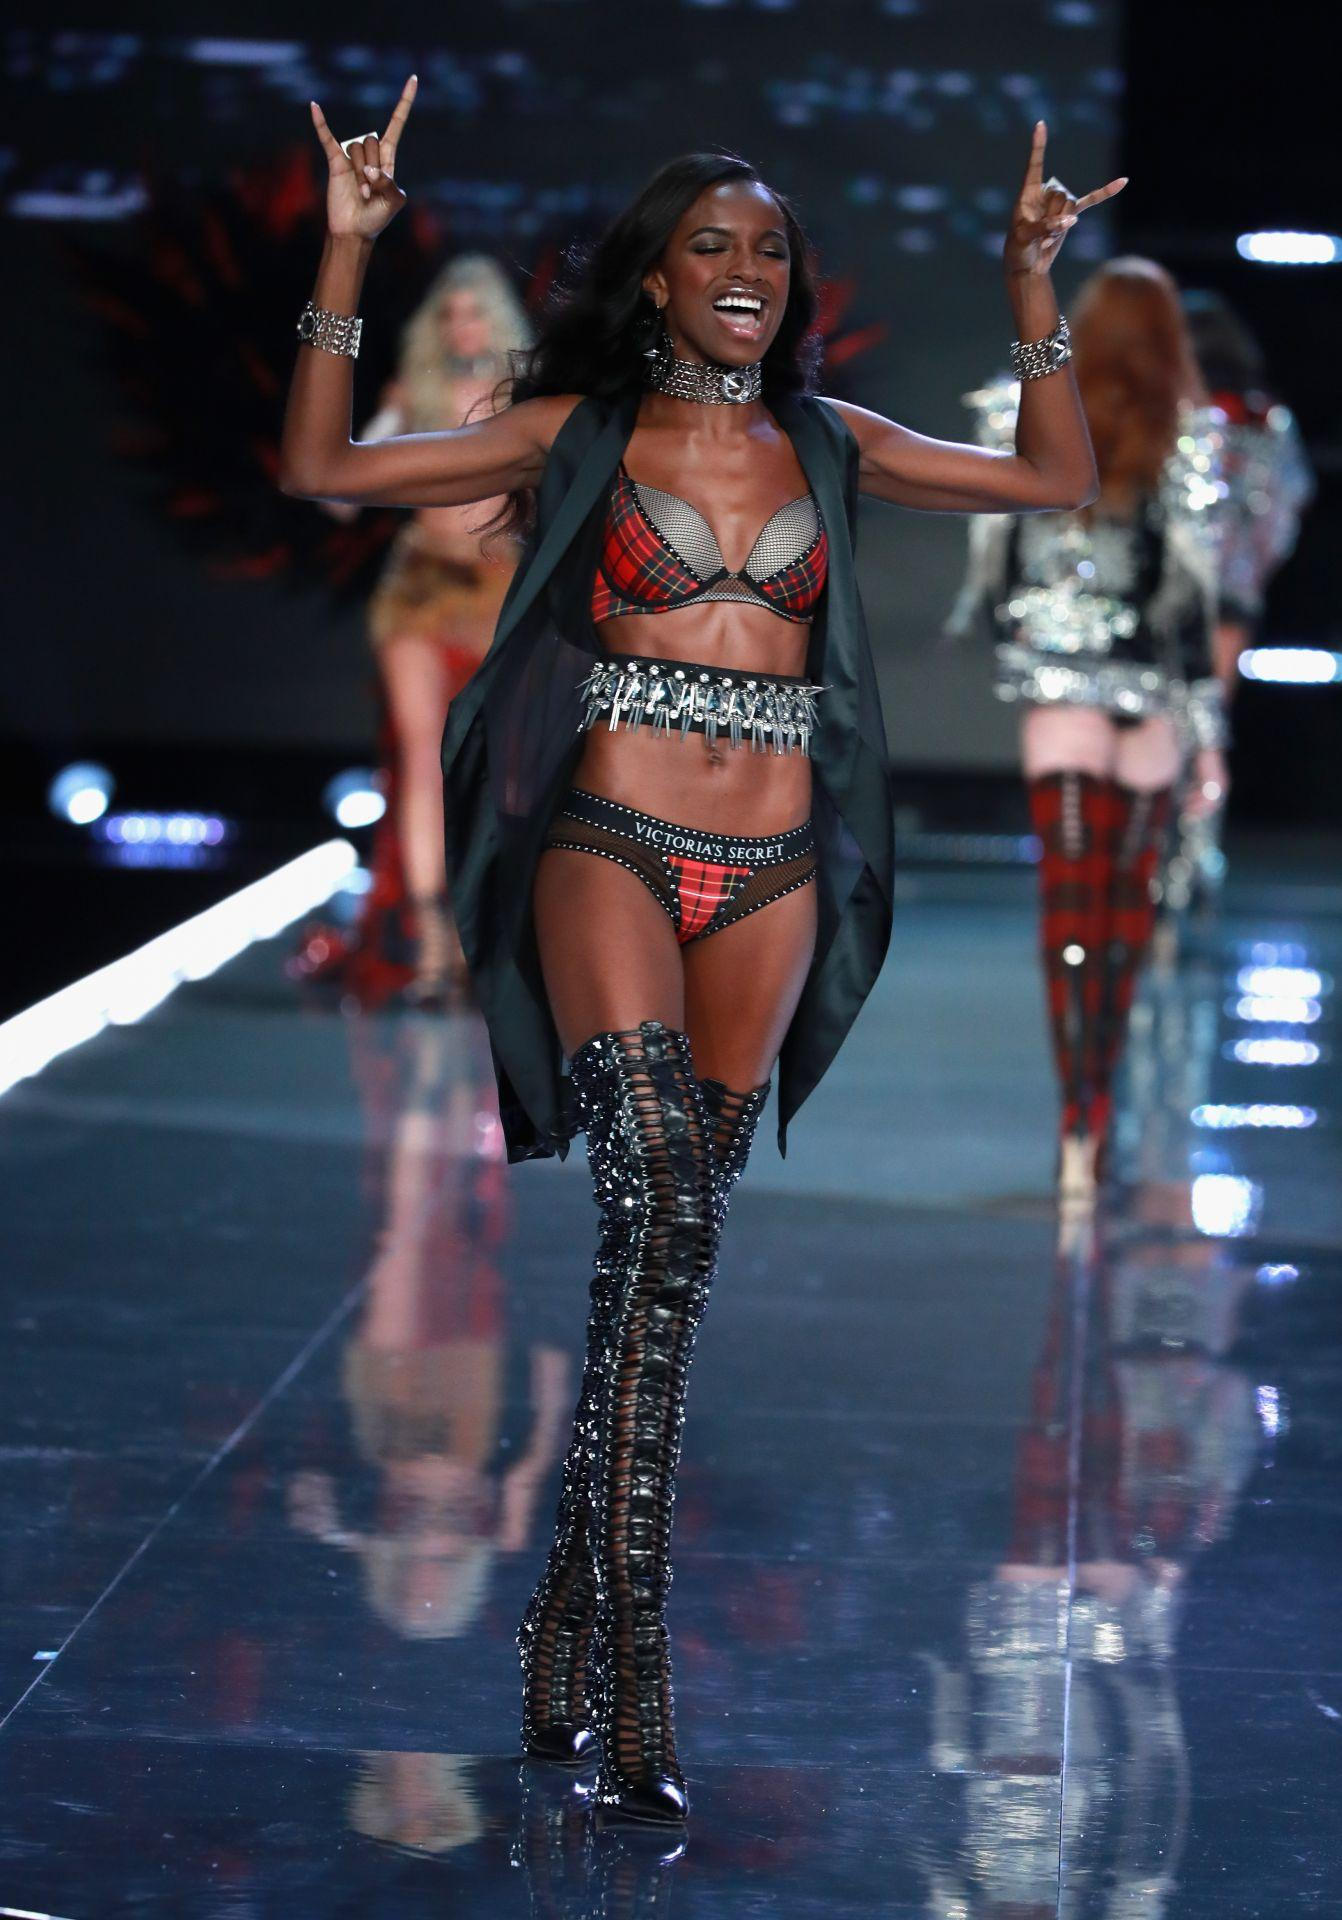 Leomie Anderson wears look made iwth Swarovski crystals at VSFS